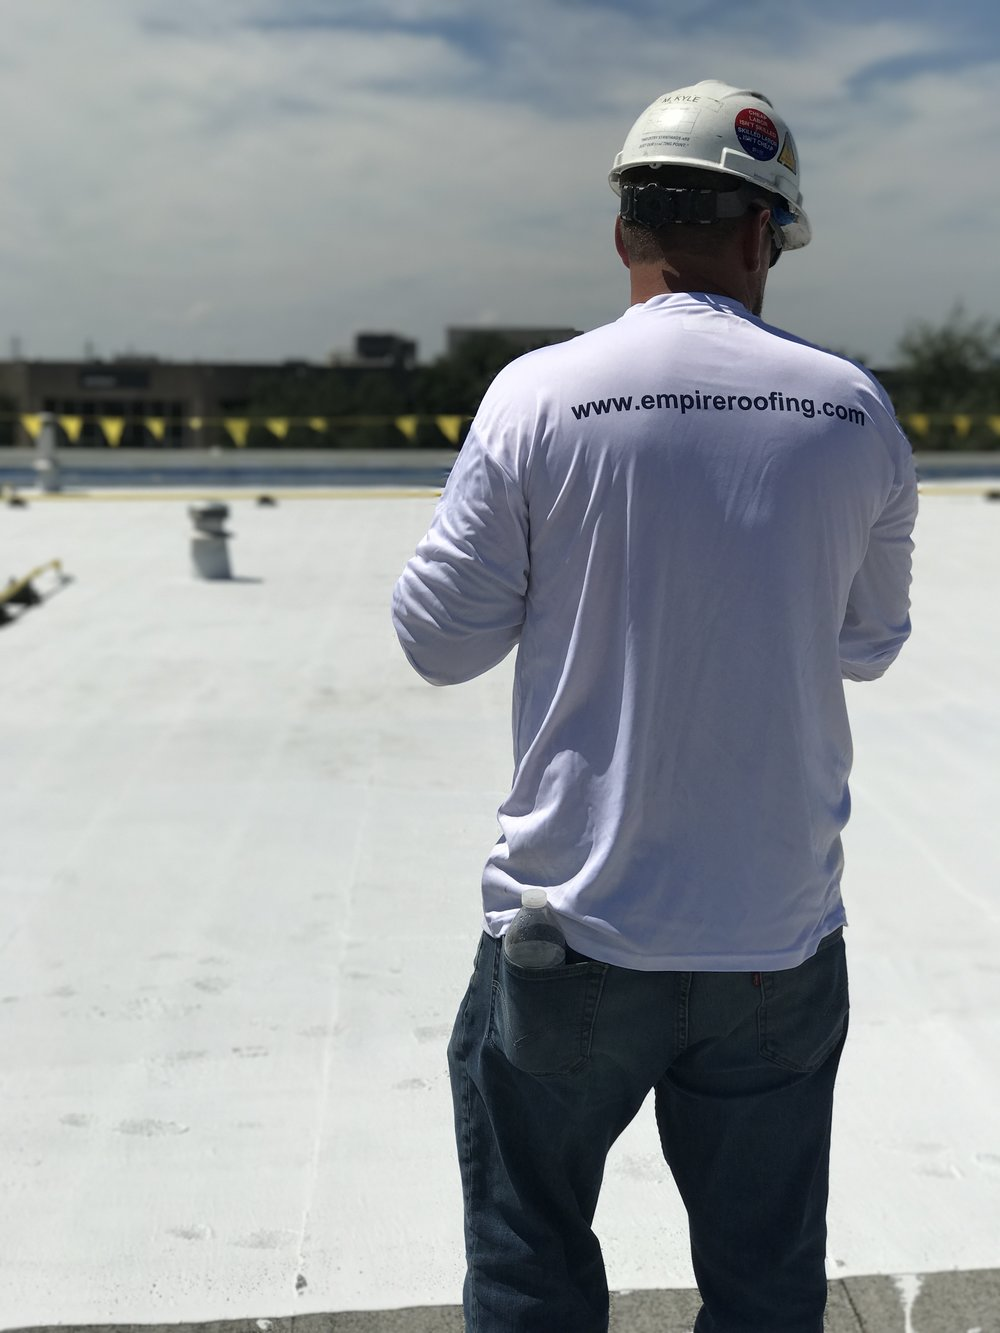 Waterproofing-TPO.JPG